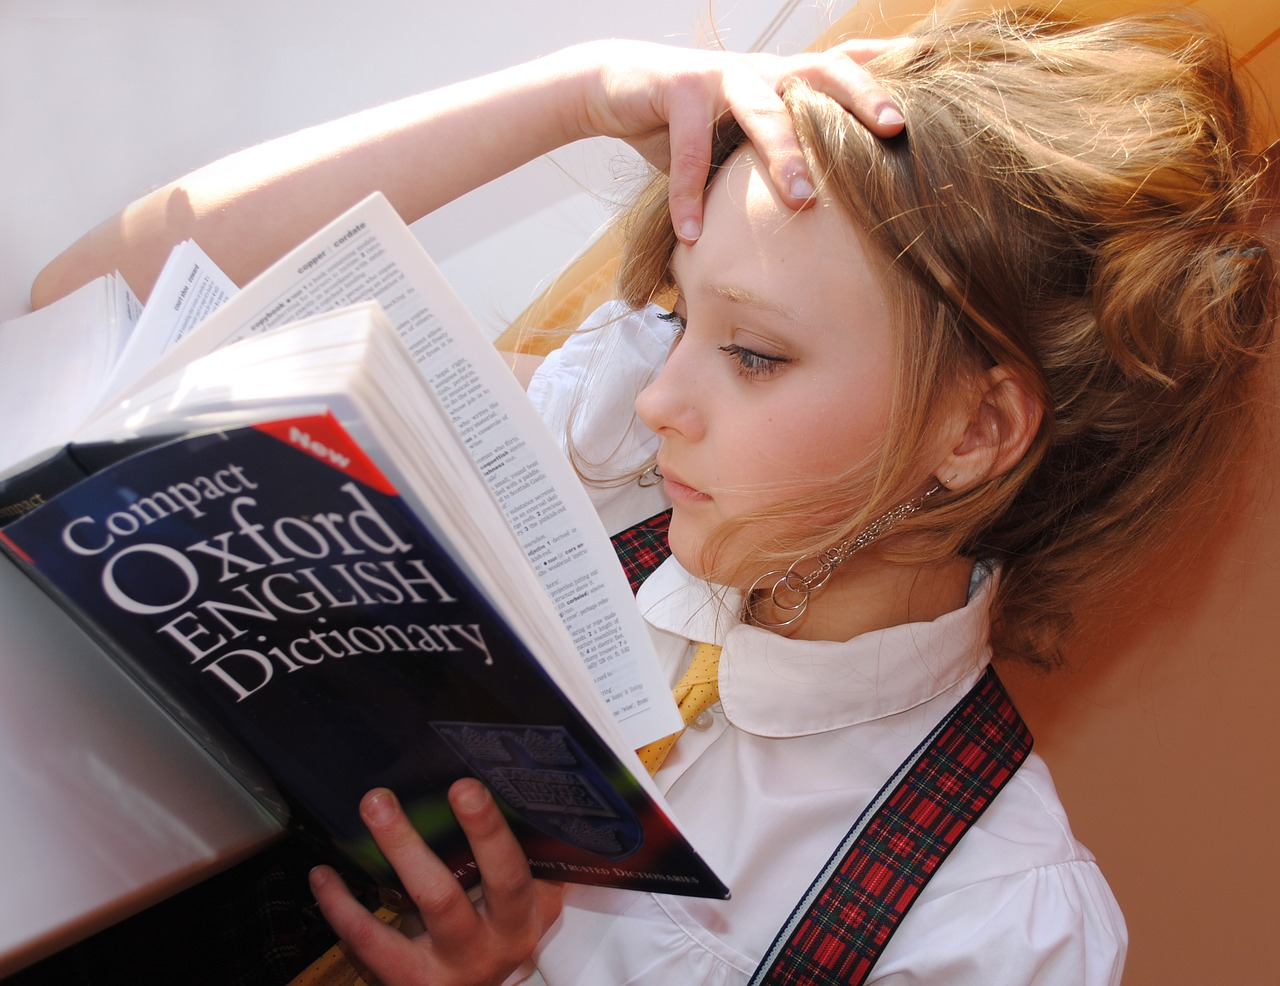 Learning-English-and-other-languages-online-with-tutor-or-courses